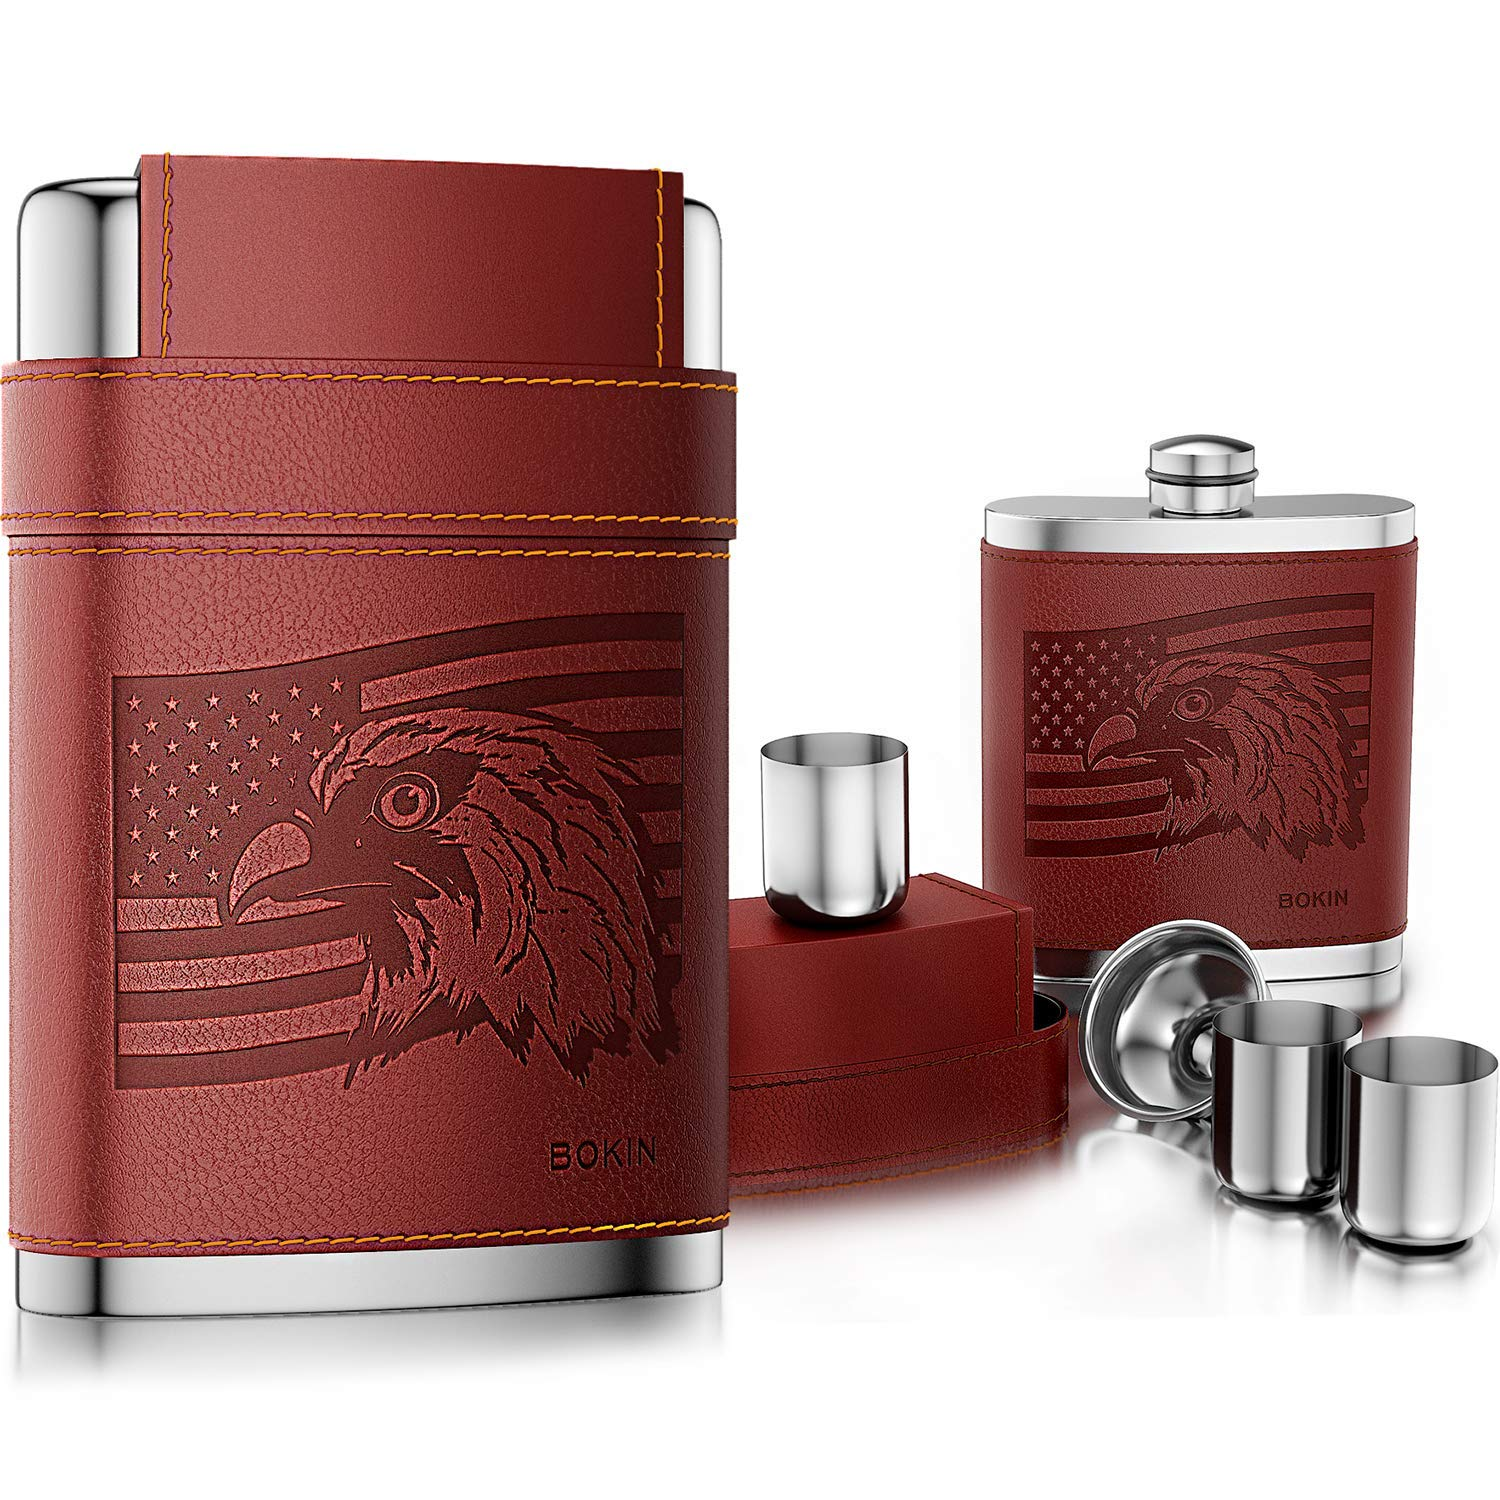 BOKIN Pocket Hip Flask 304 Stainless Steel with Funnel and 3 Cups, American Flag Eagle Brown Leather Wrapped, 100% Leak Proof for Discrete Liquor, Whiskey, Rum and Shot Drinking, Gift for Men, 8oz